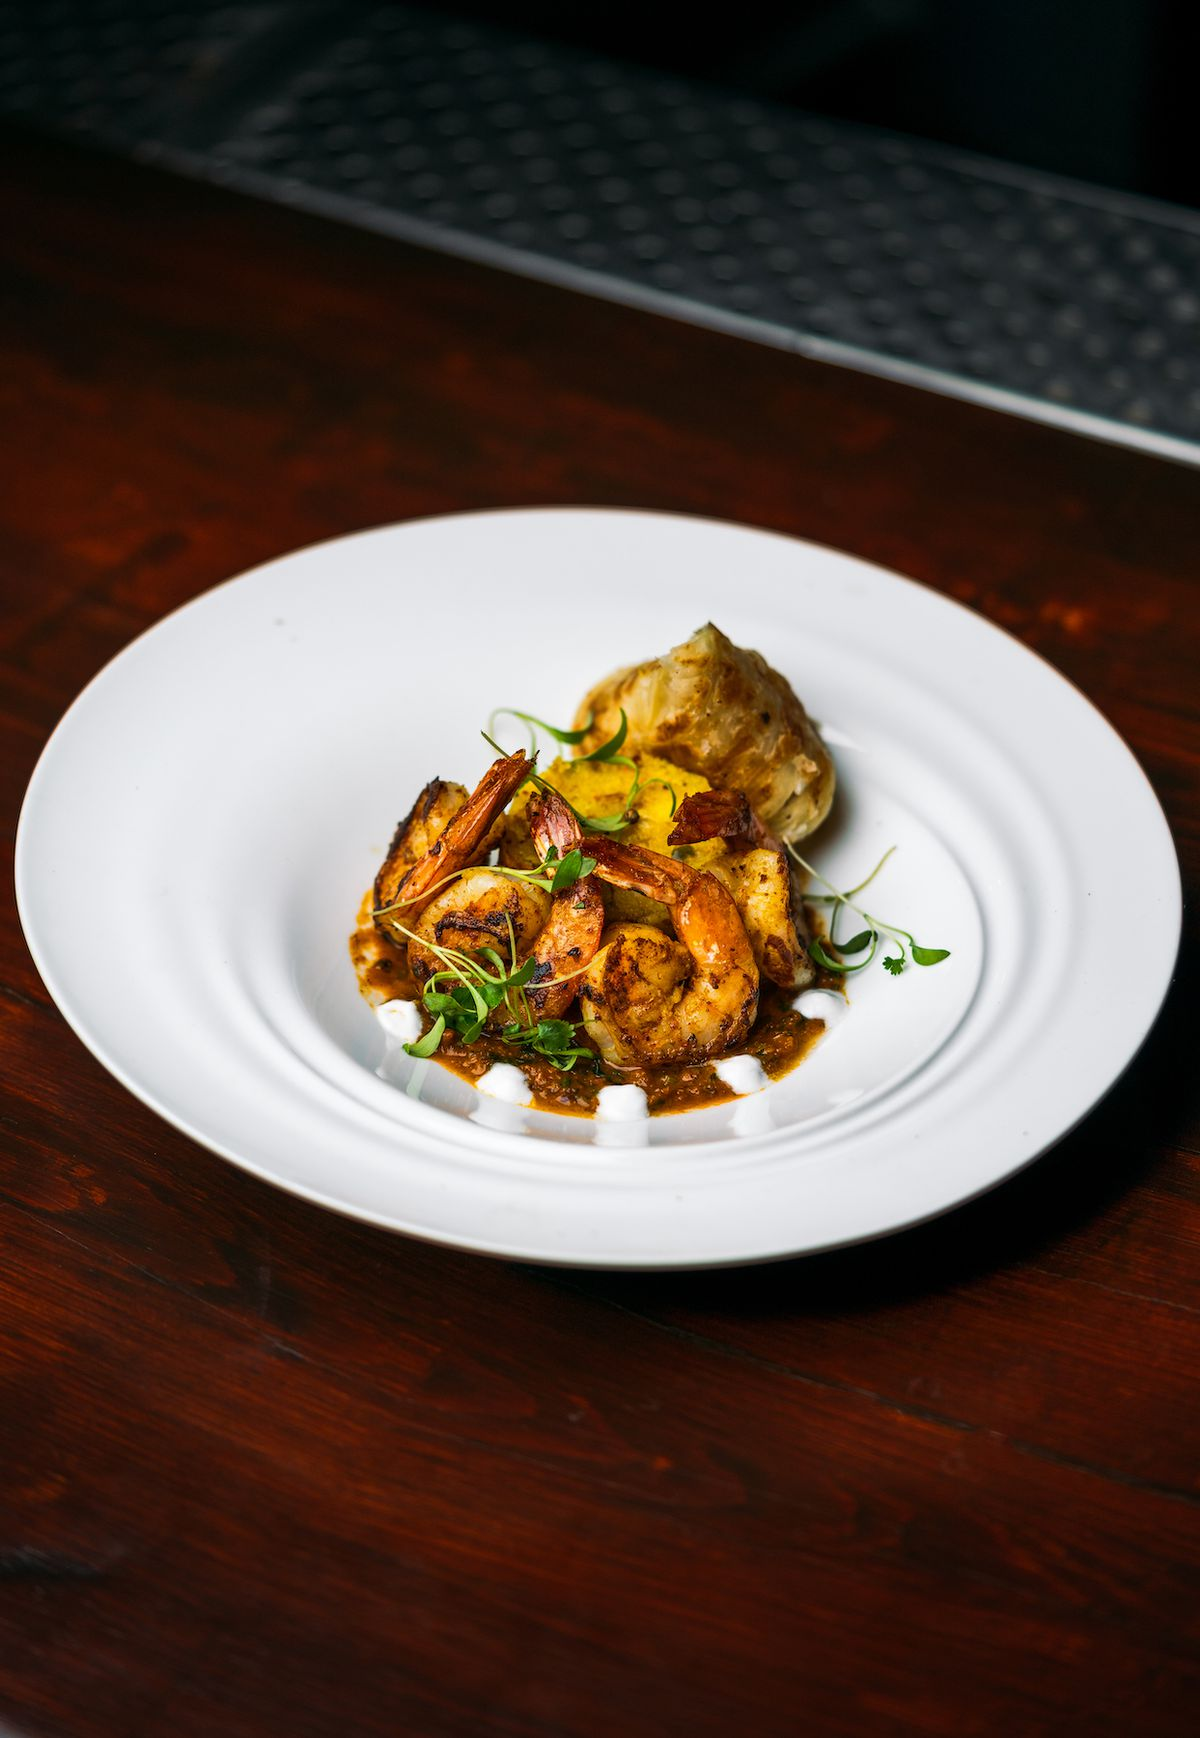 A white plate on a wooden table. The late has a couple of pieces of cooked shrimp, some rice, and some greens sprinkled on top